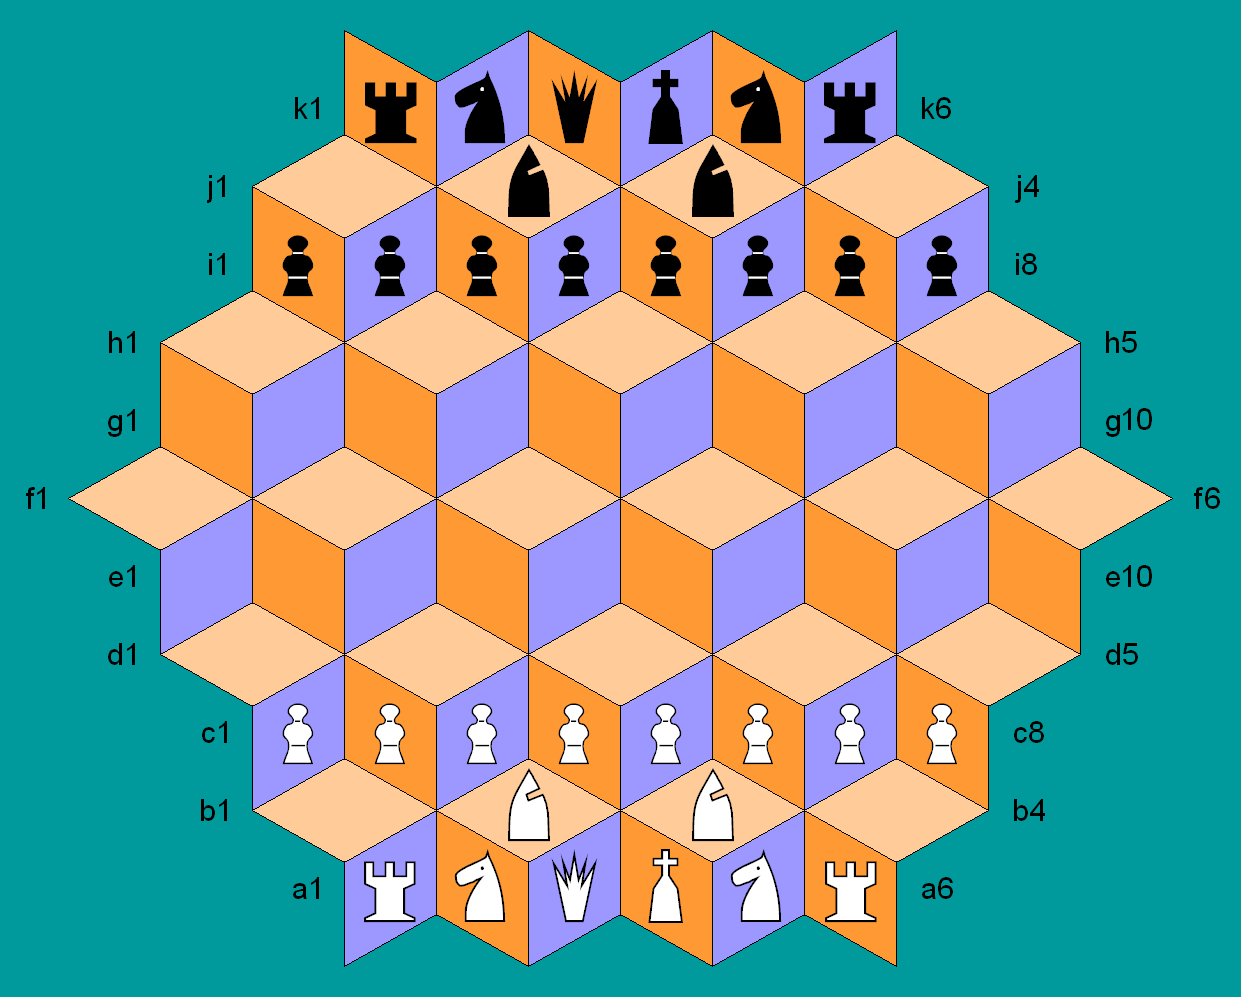 https://upload.wikimedia.org/wikipedia/commons/8/8e/Rhombic_Chess_gameboard_and_starting_position.png